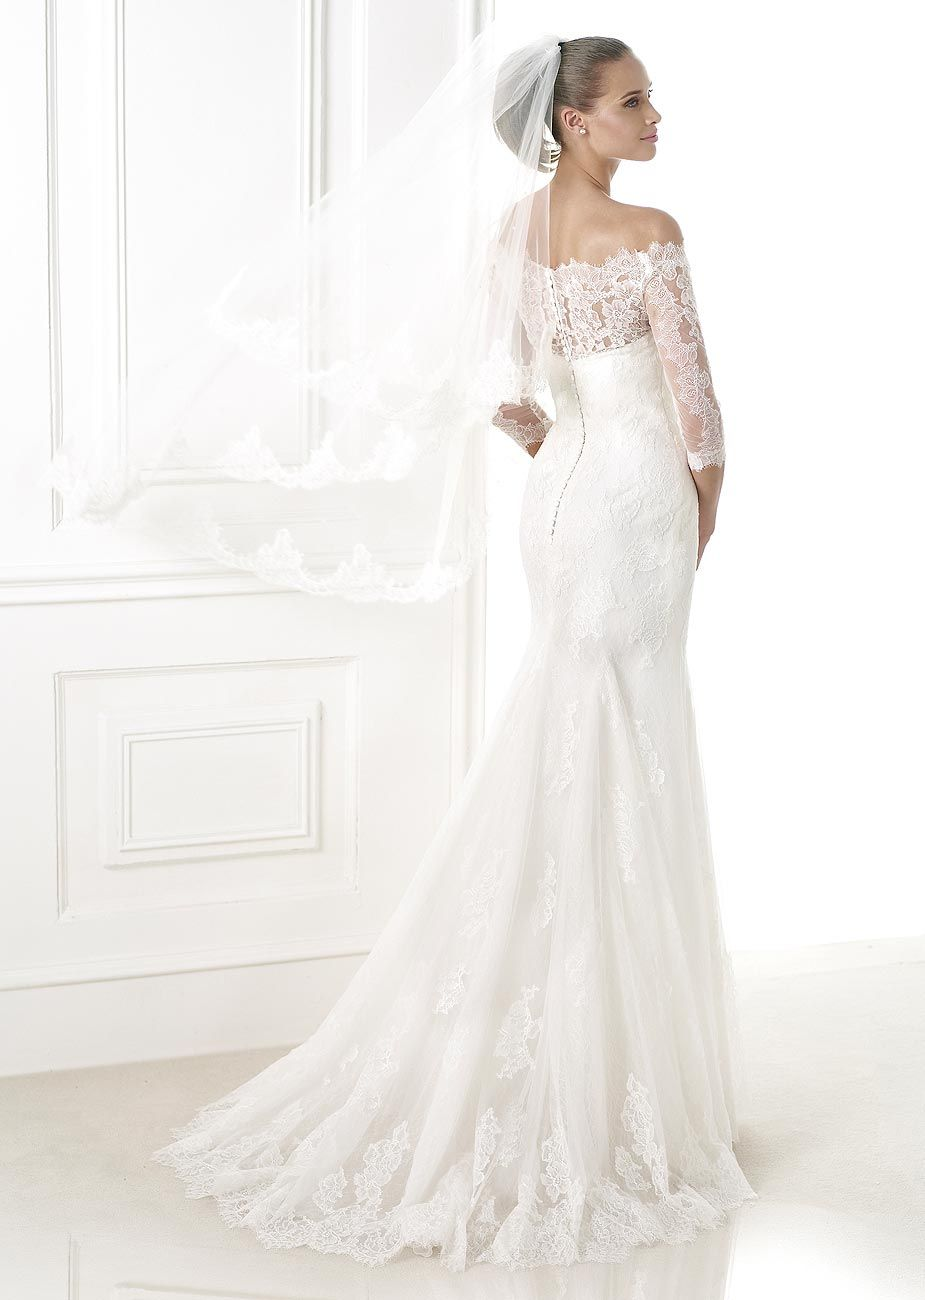 Bellamy by pronovias available at teokath of london ideas for izabella bridal boutique toronto mississauga bridal gowns and designer wedding dresses bridesmaids dresses mothers and evening dresses and a ombrellifo Images